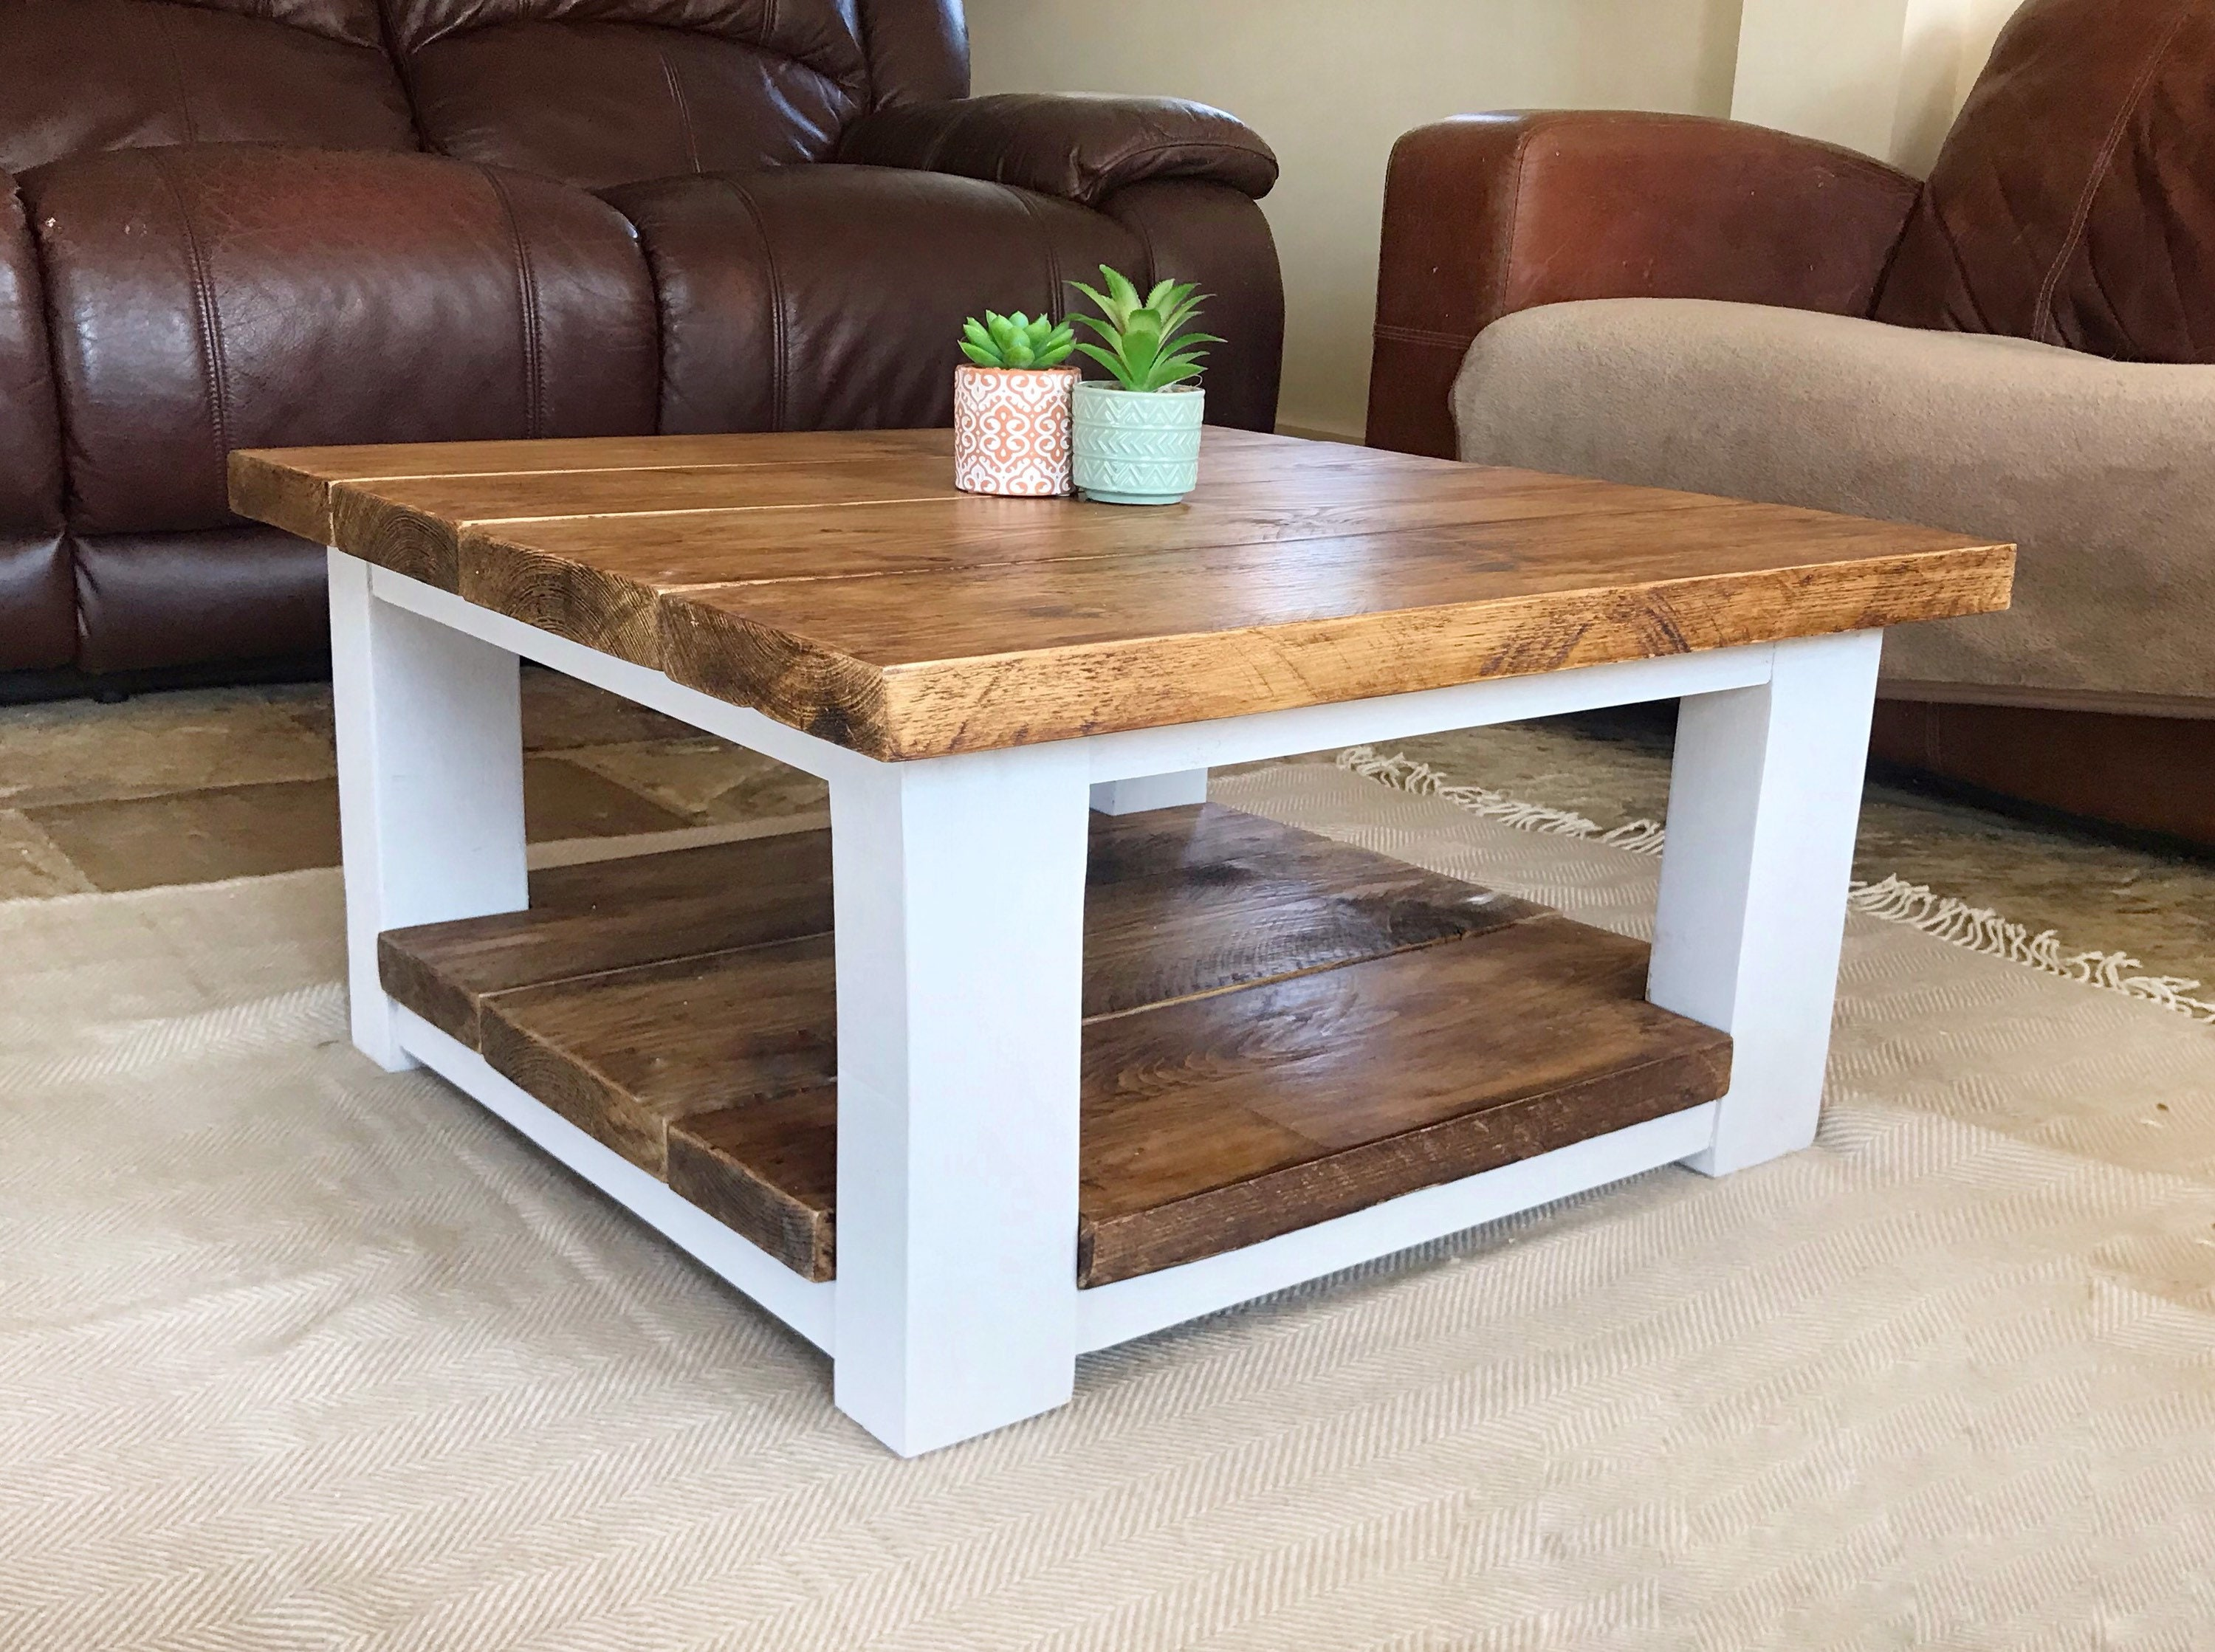 Chunky wooden Coffee Table, square table, reclaimed wooden table with painted grey leg and trims